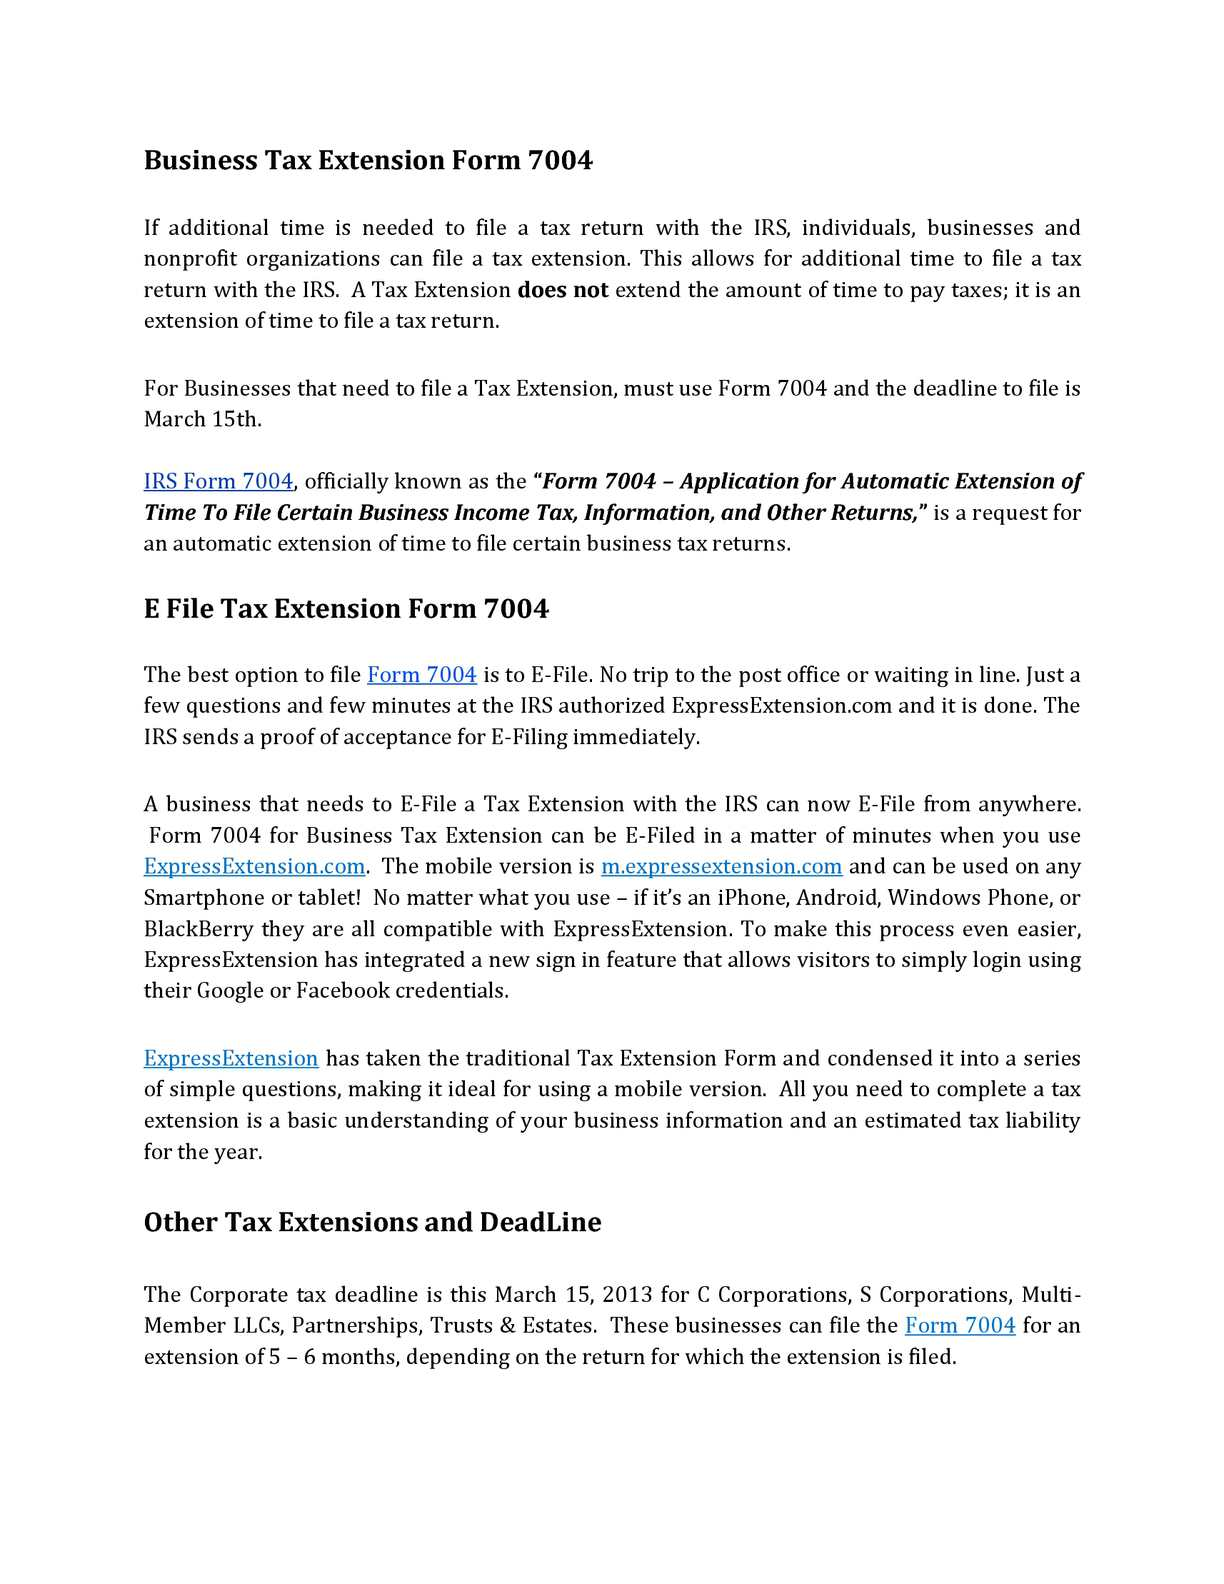 Calaméo - Business Tax Extension Form 7004 and the Deadline